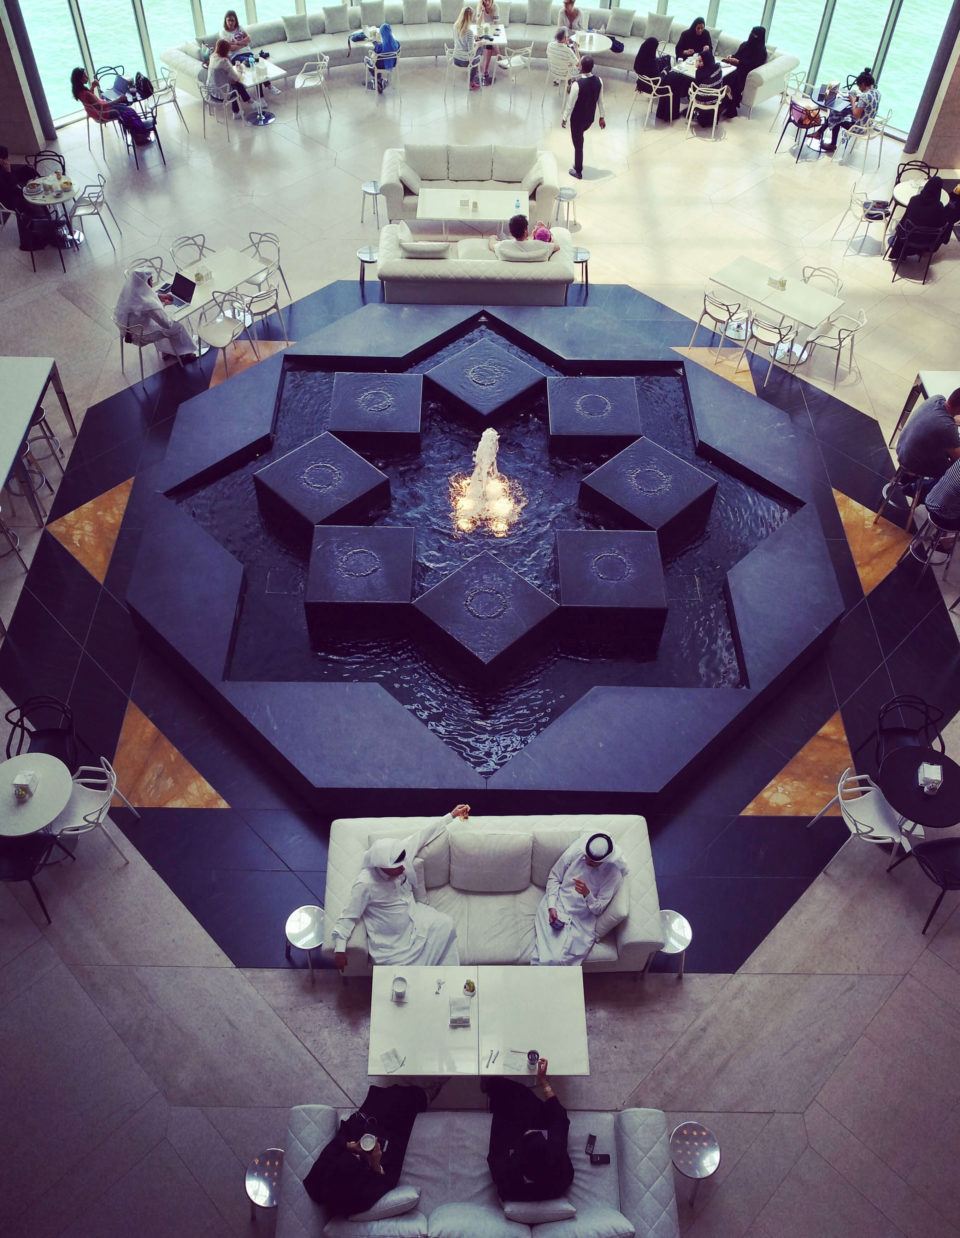 Museum of Islamic Art Café